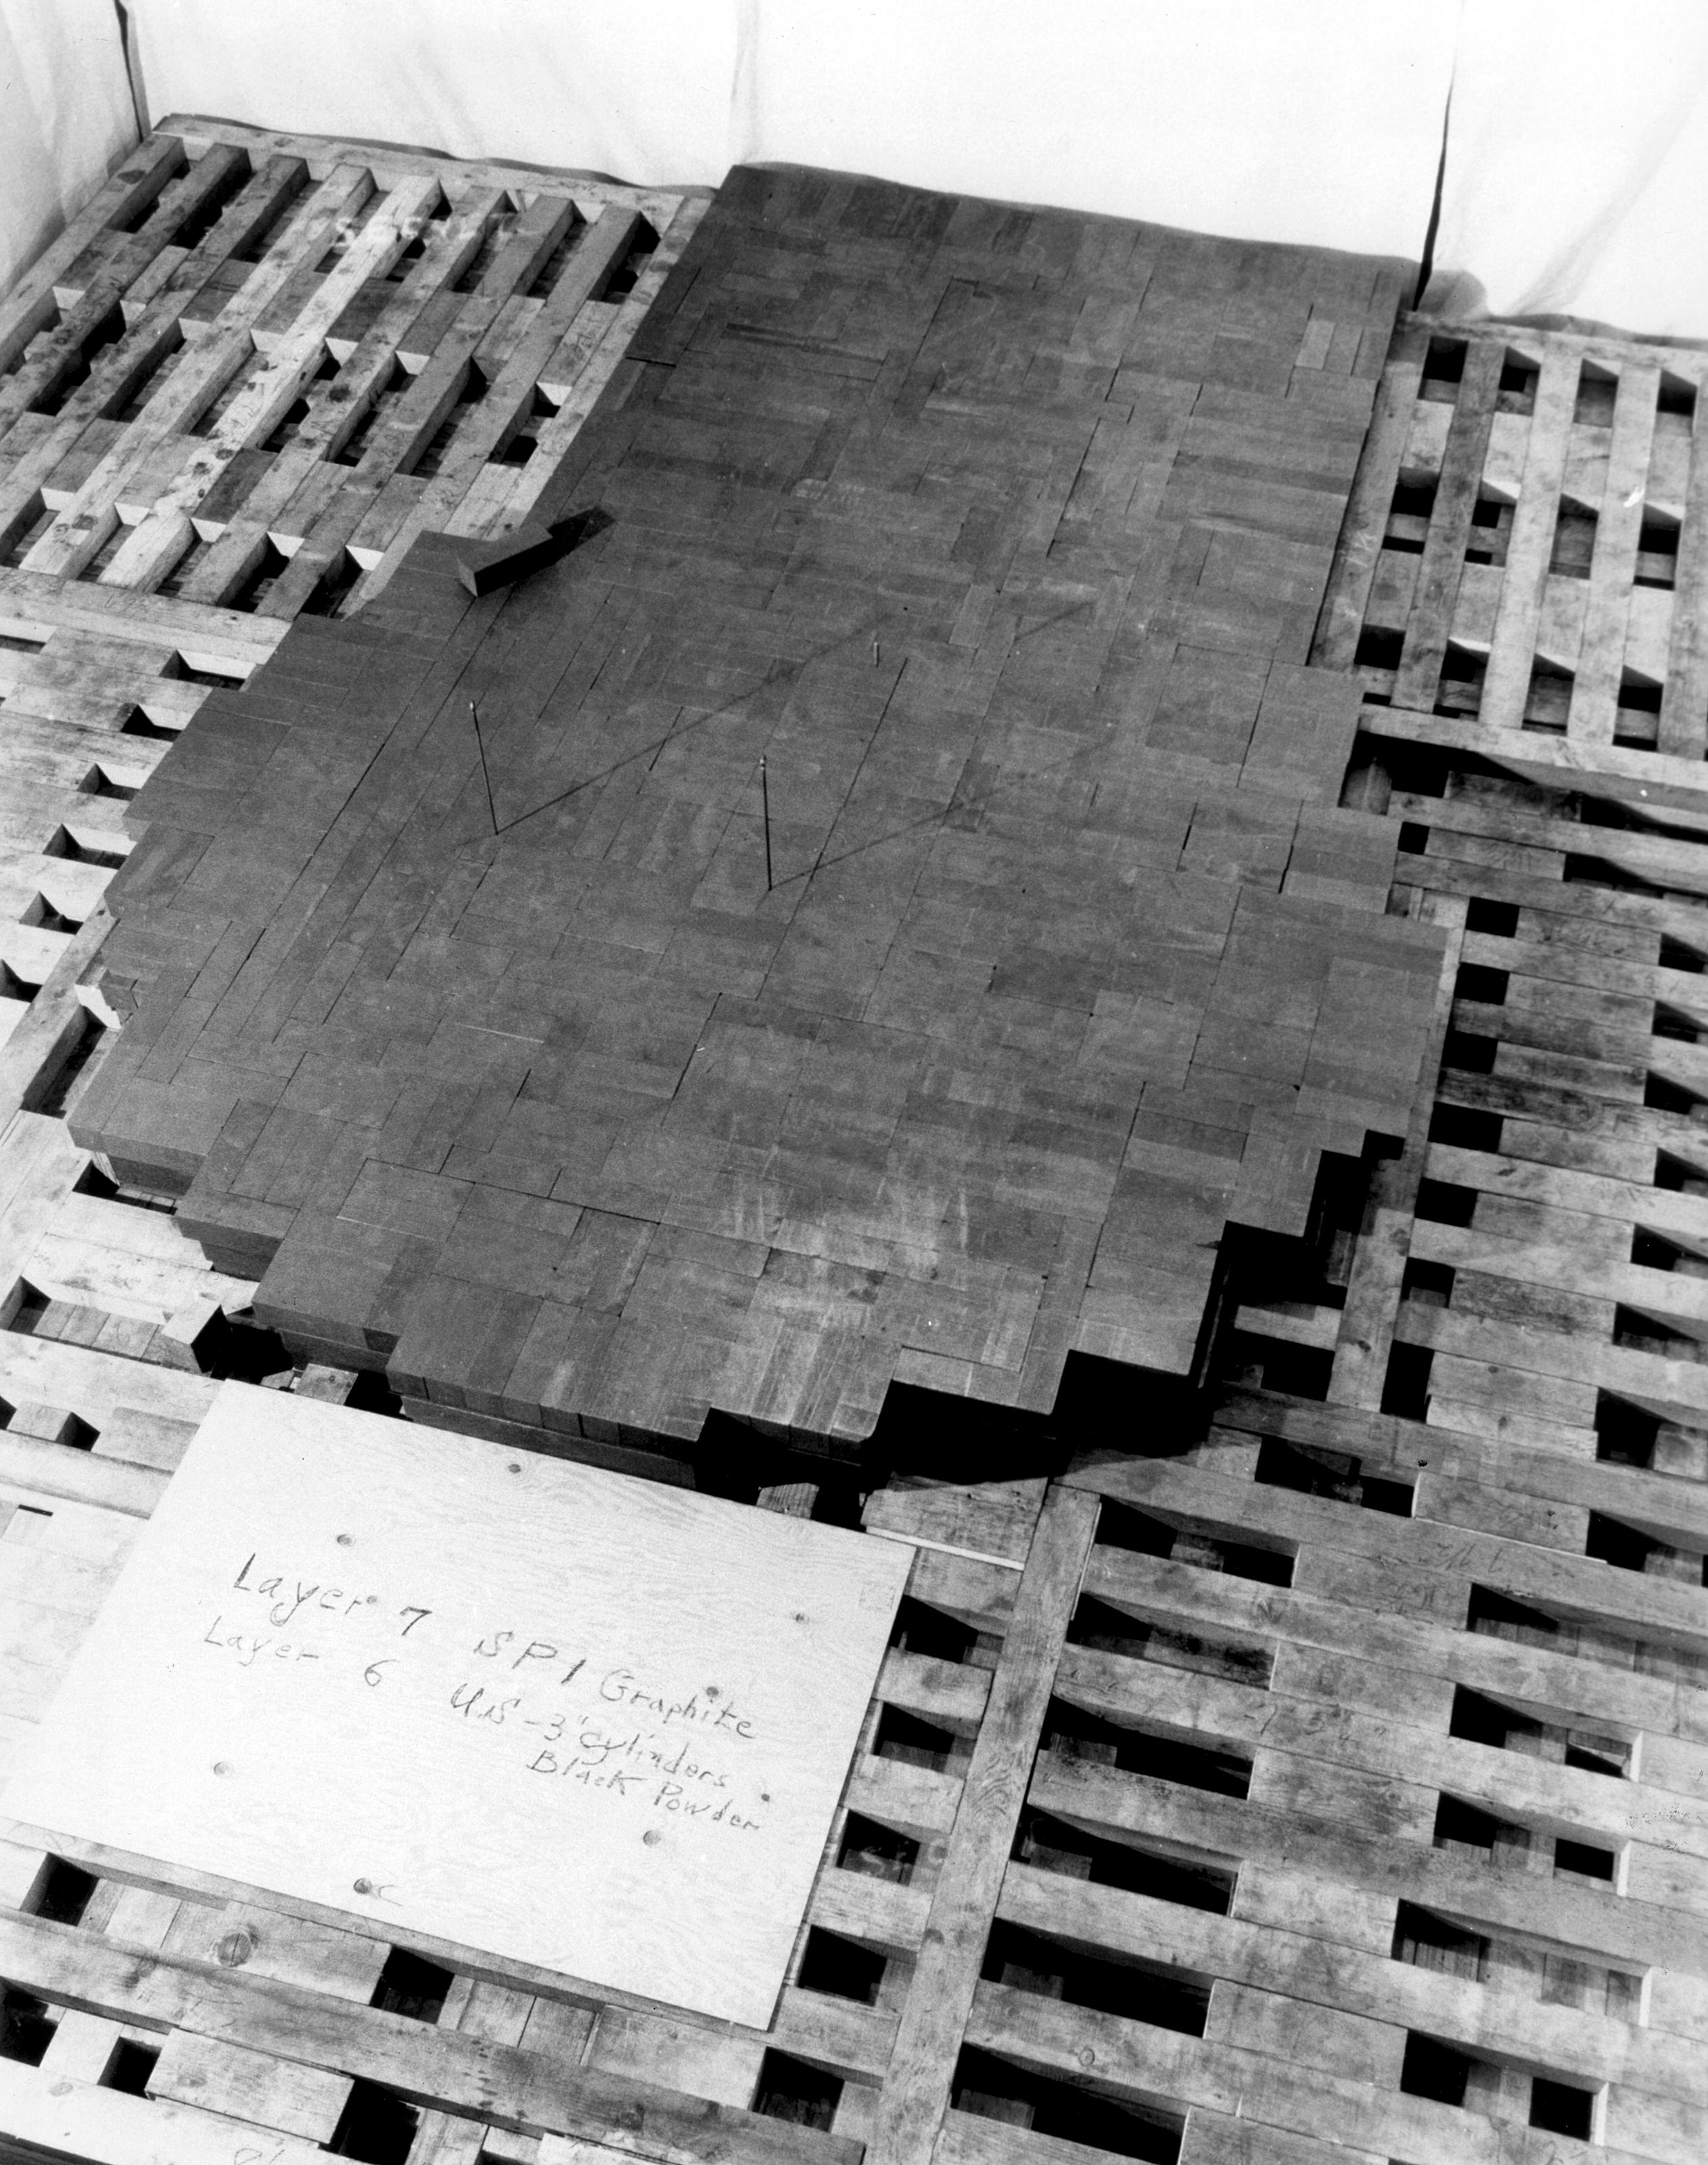 CP-1 during assembly, 1942. Photograph shows the 7th layer of graphite blocks and edges of the 6th layer.